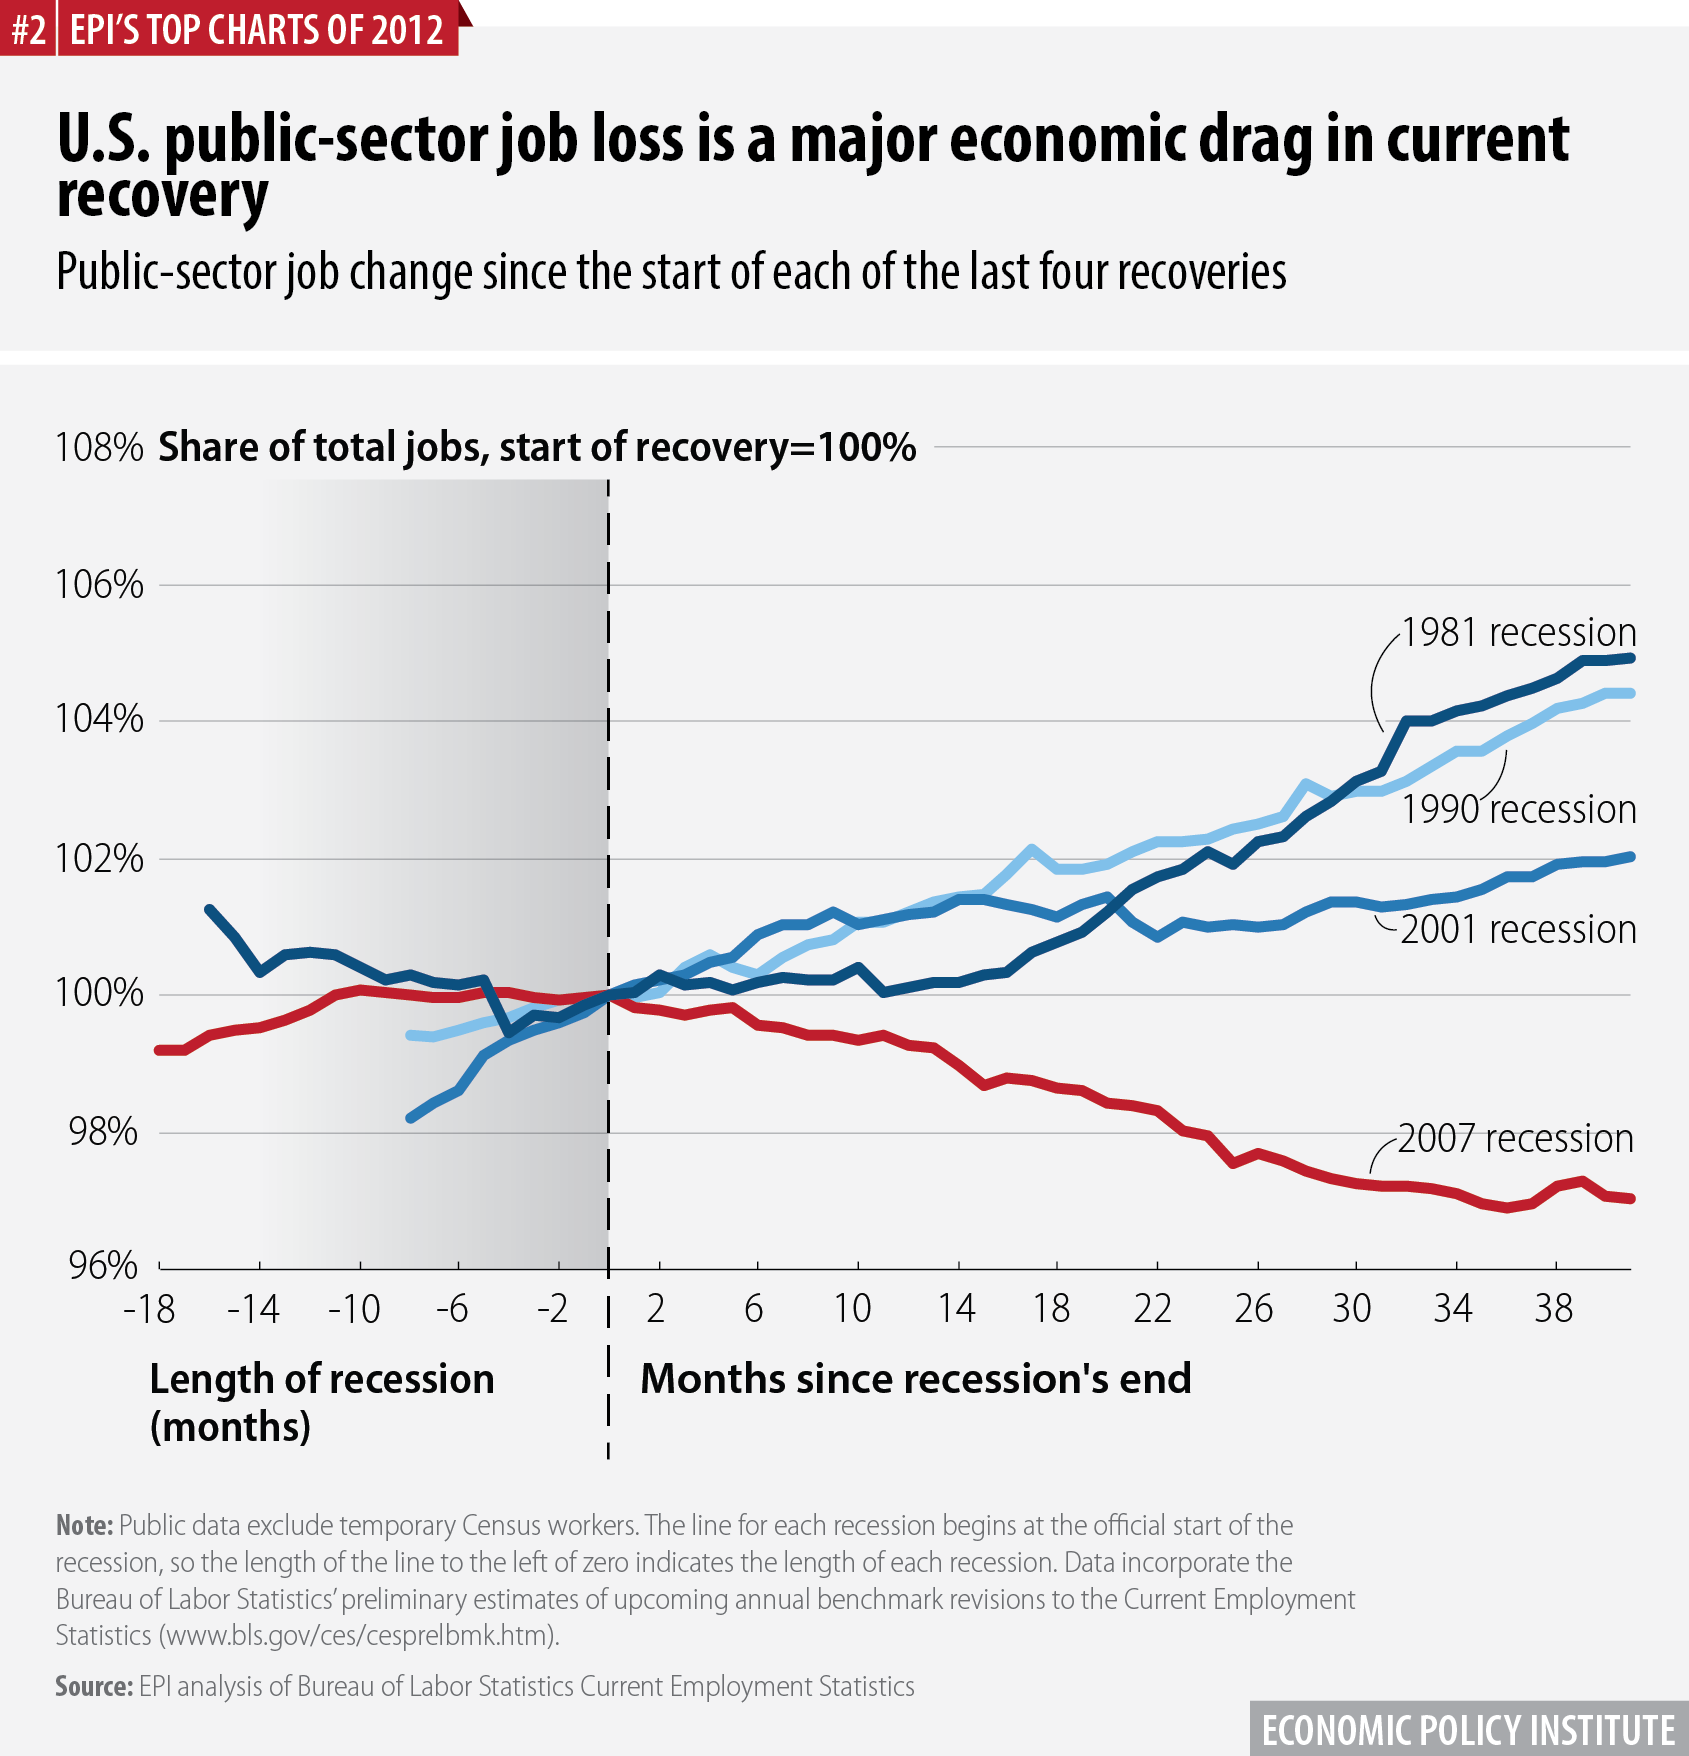 U.S. public-sector job loss is a major economic drag in current recovery | Public-sector job change since the start of each of the last four recoveries